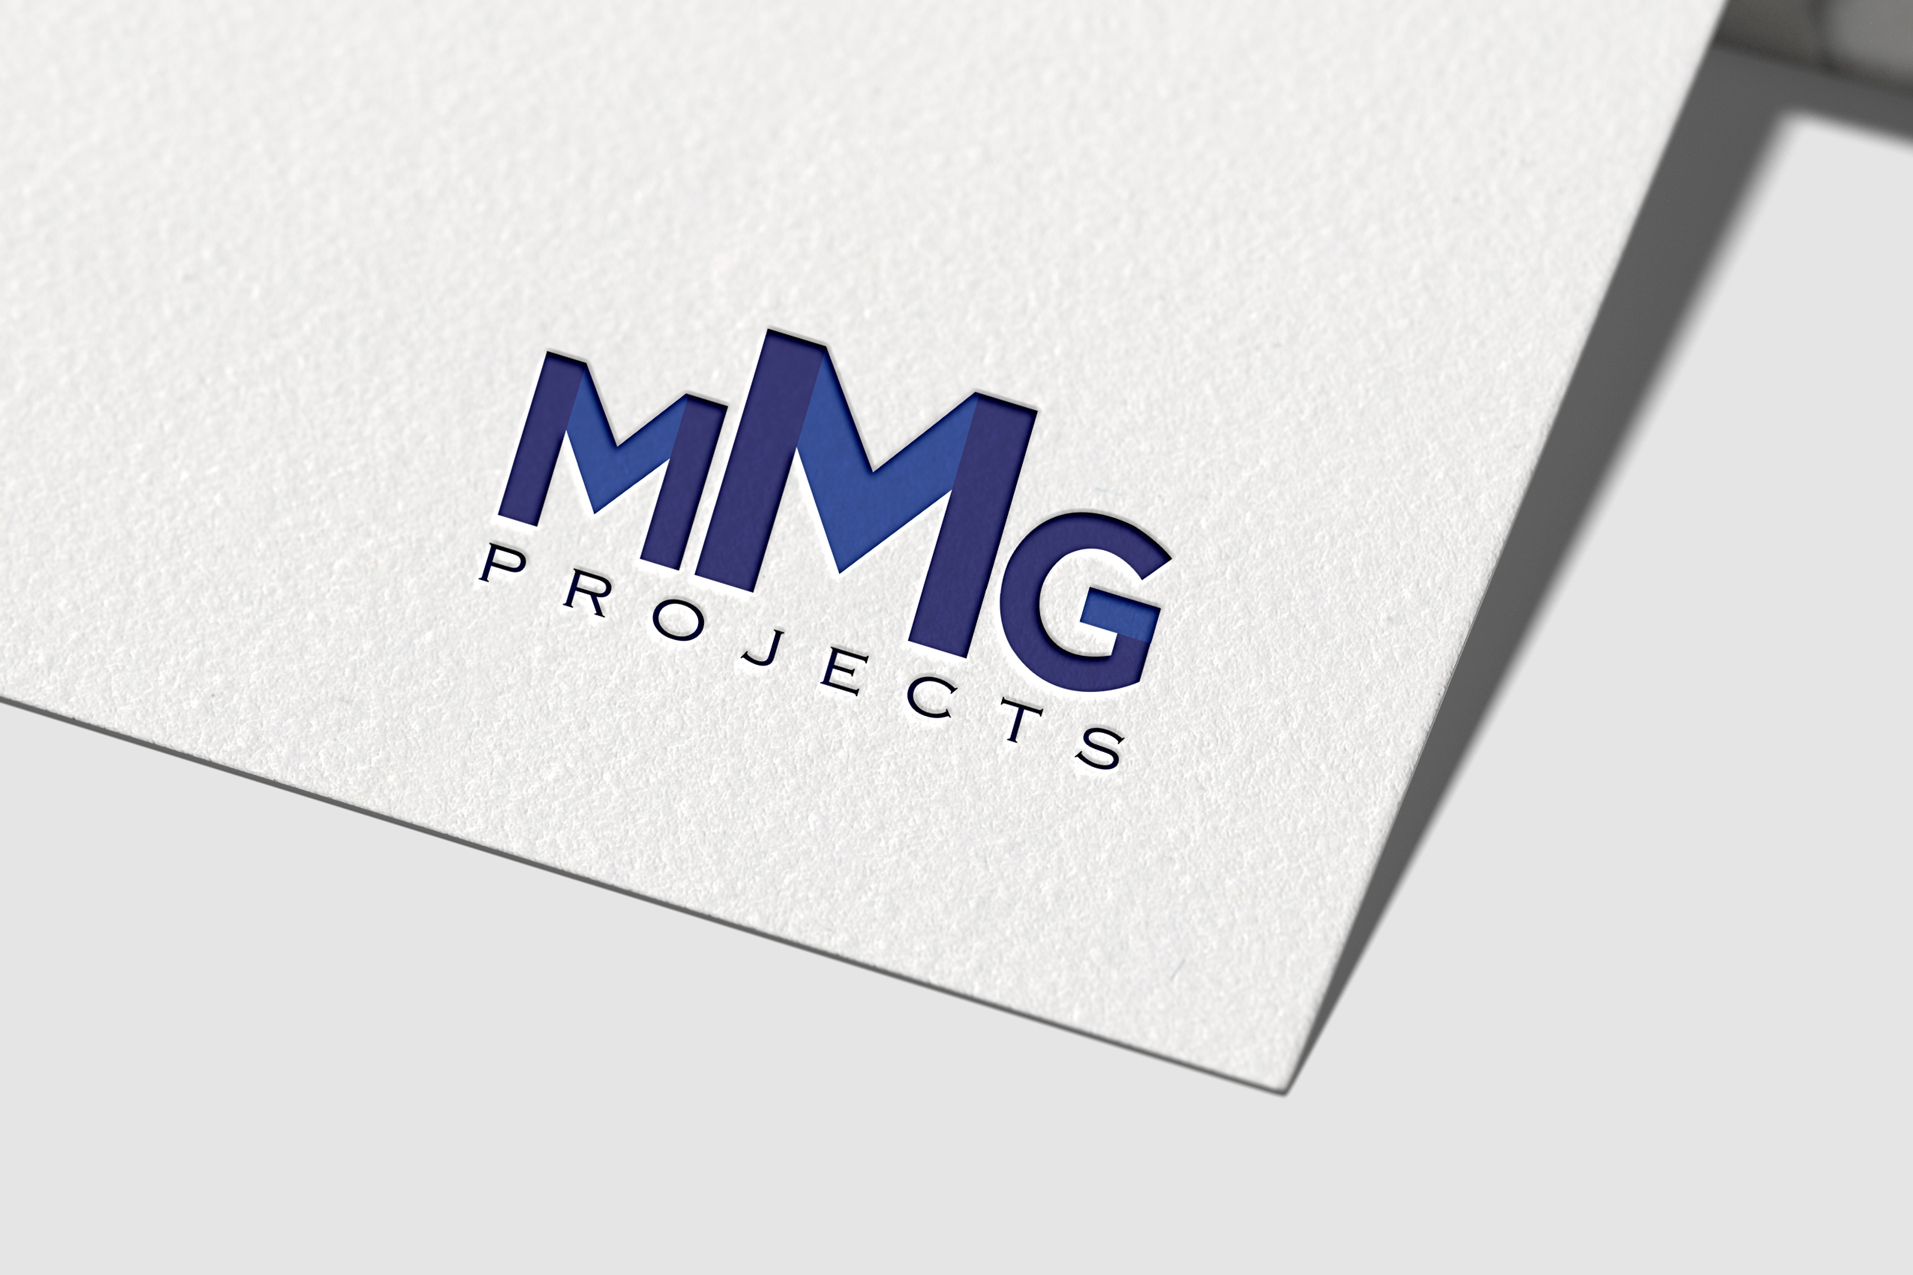 MMG-Projects-logo-on-paper